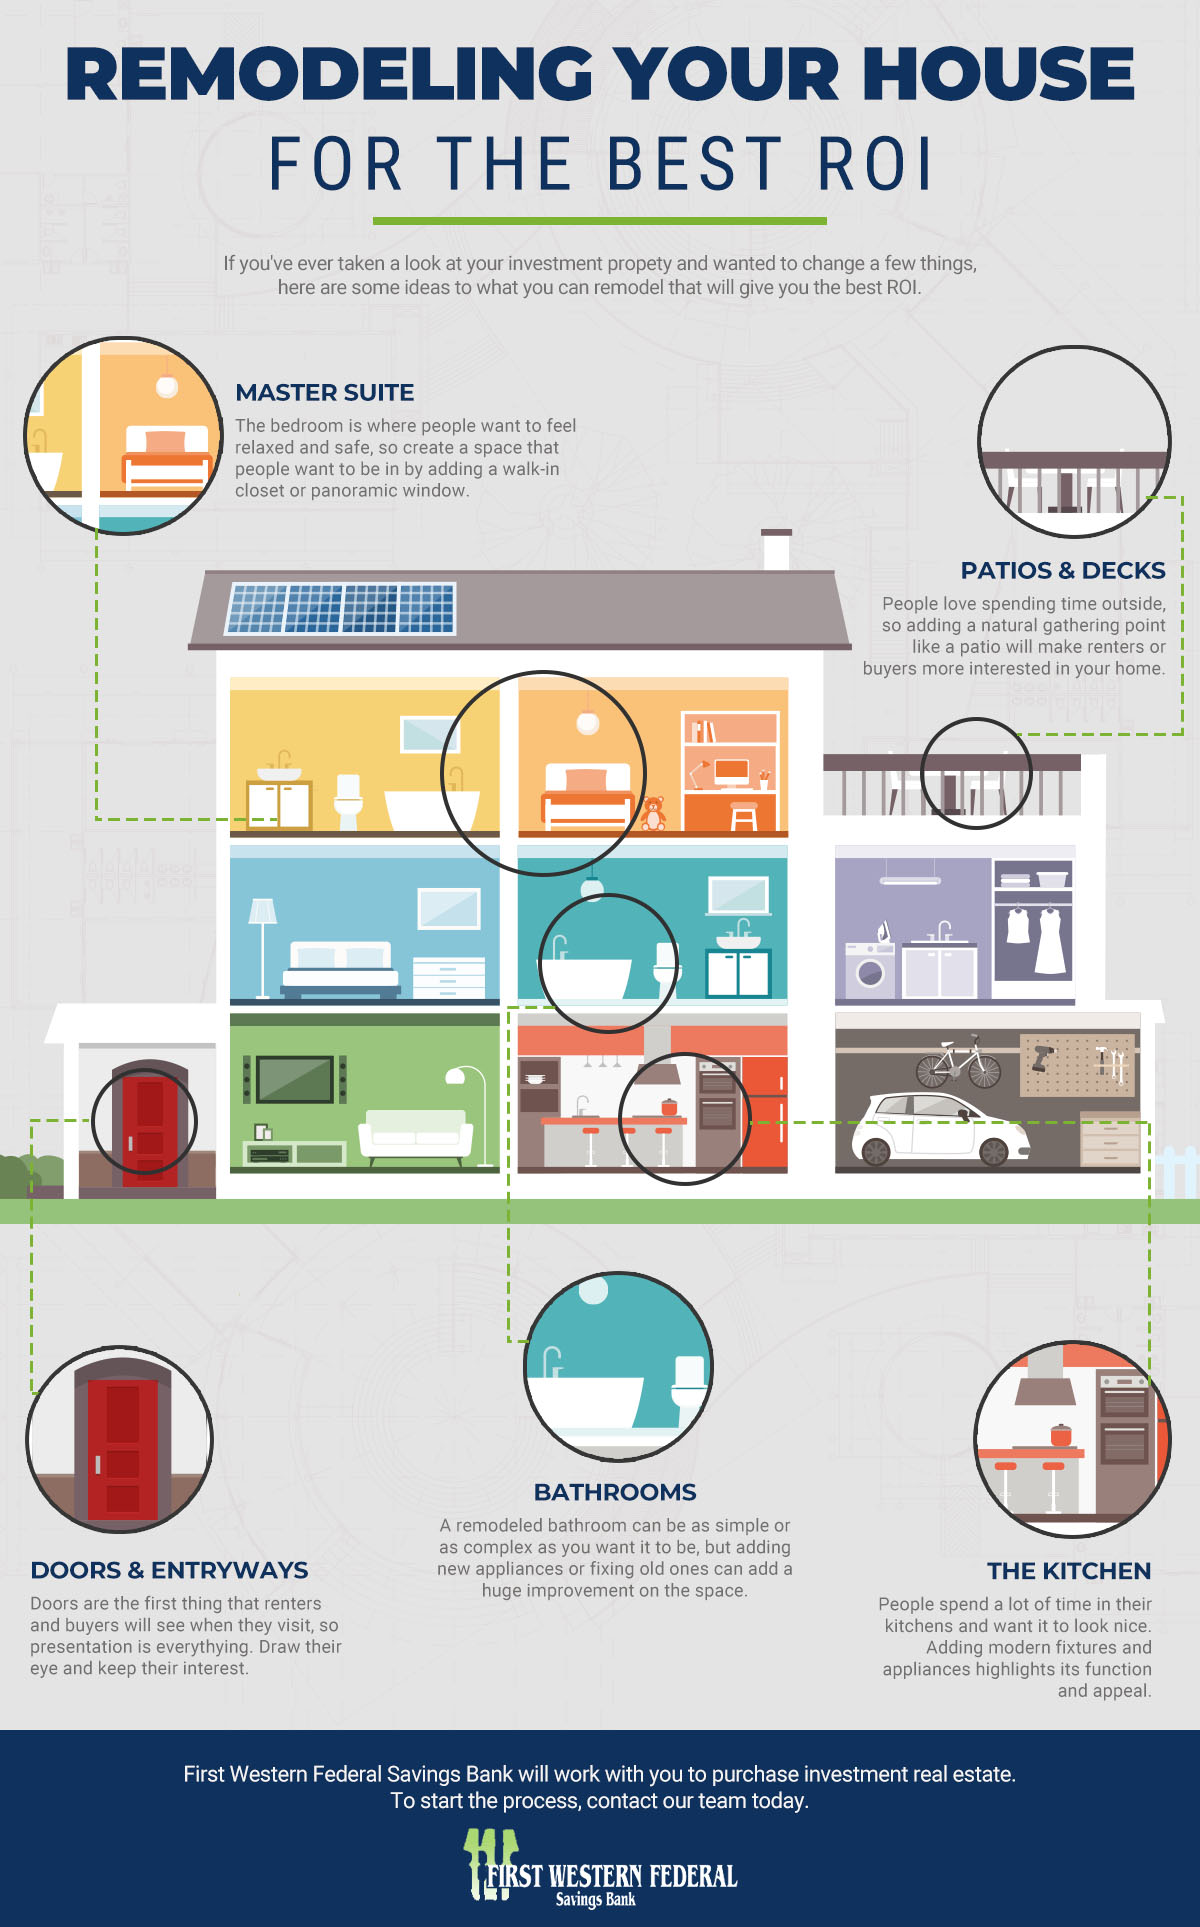 Remodeling your house infographic